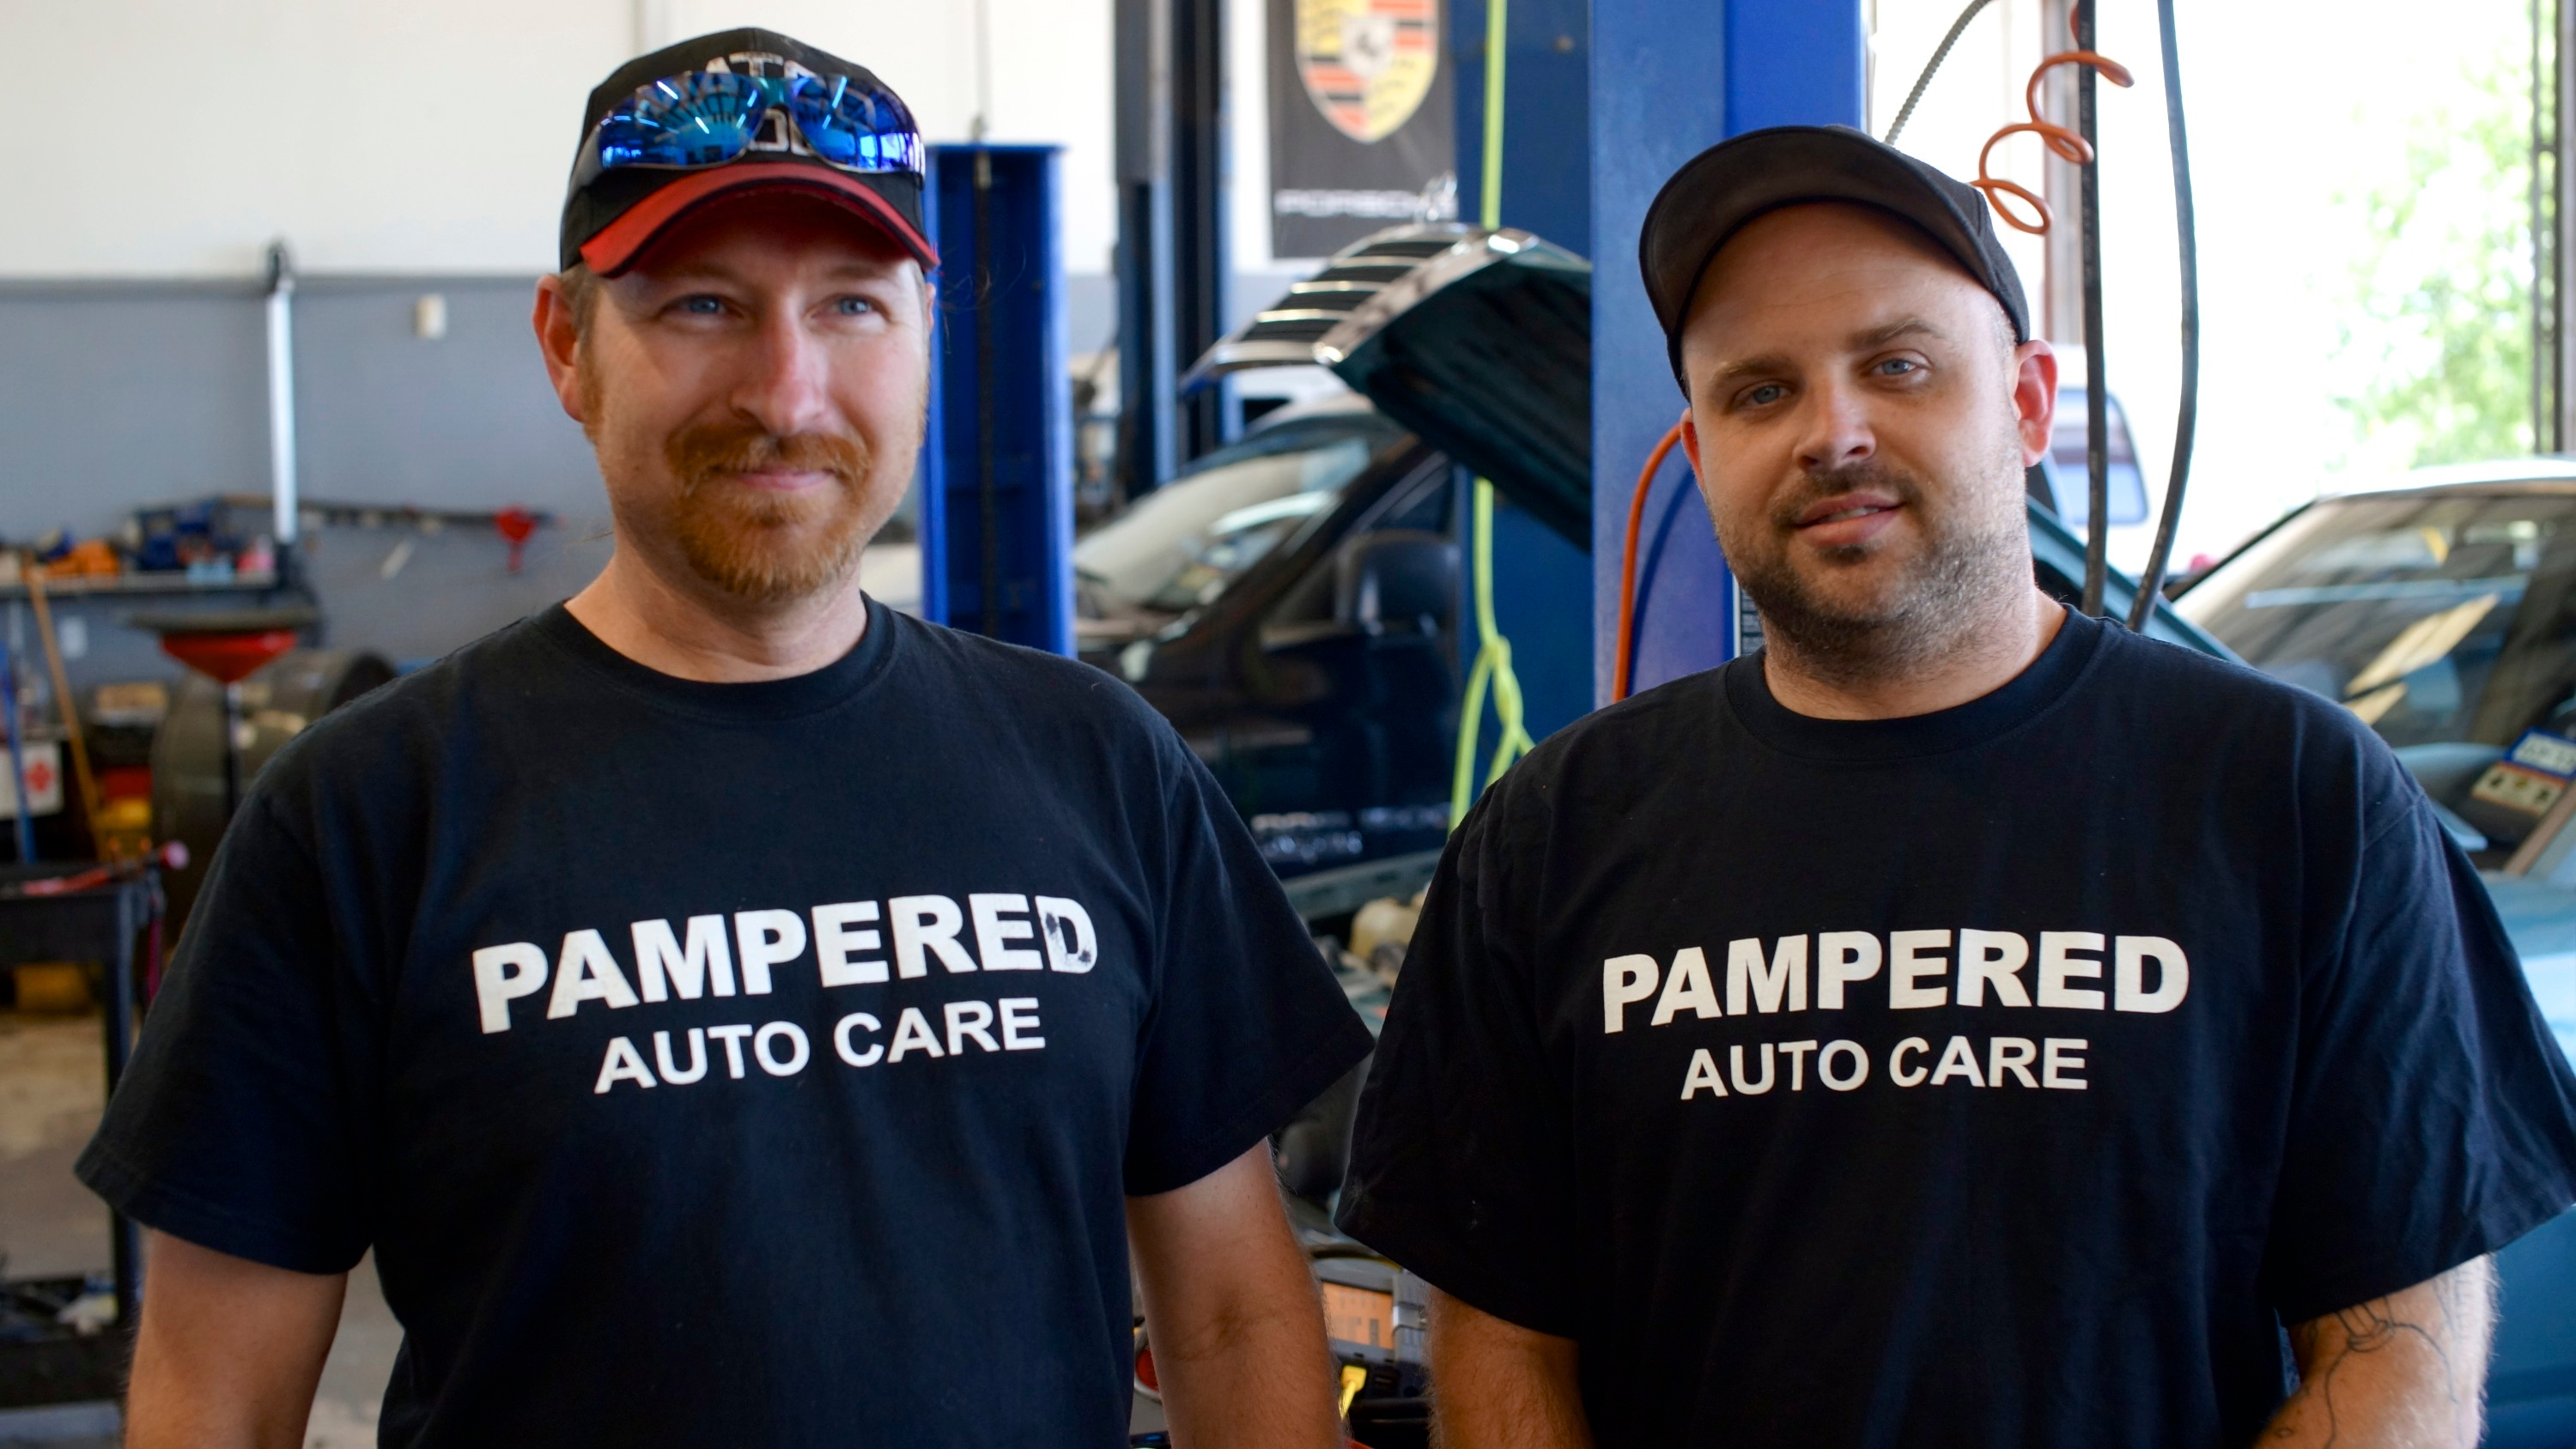 Pampered Auto Care - ad image